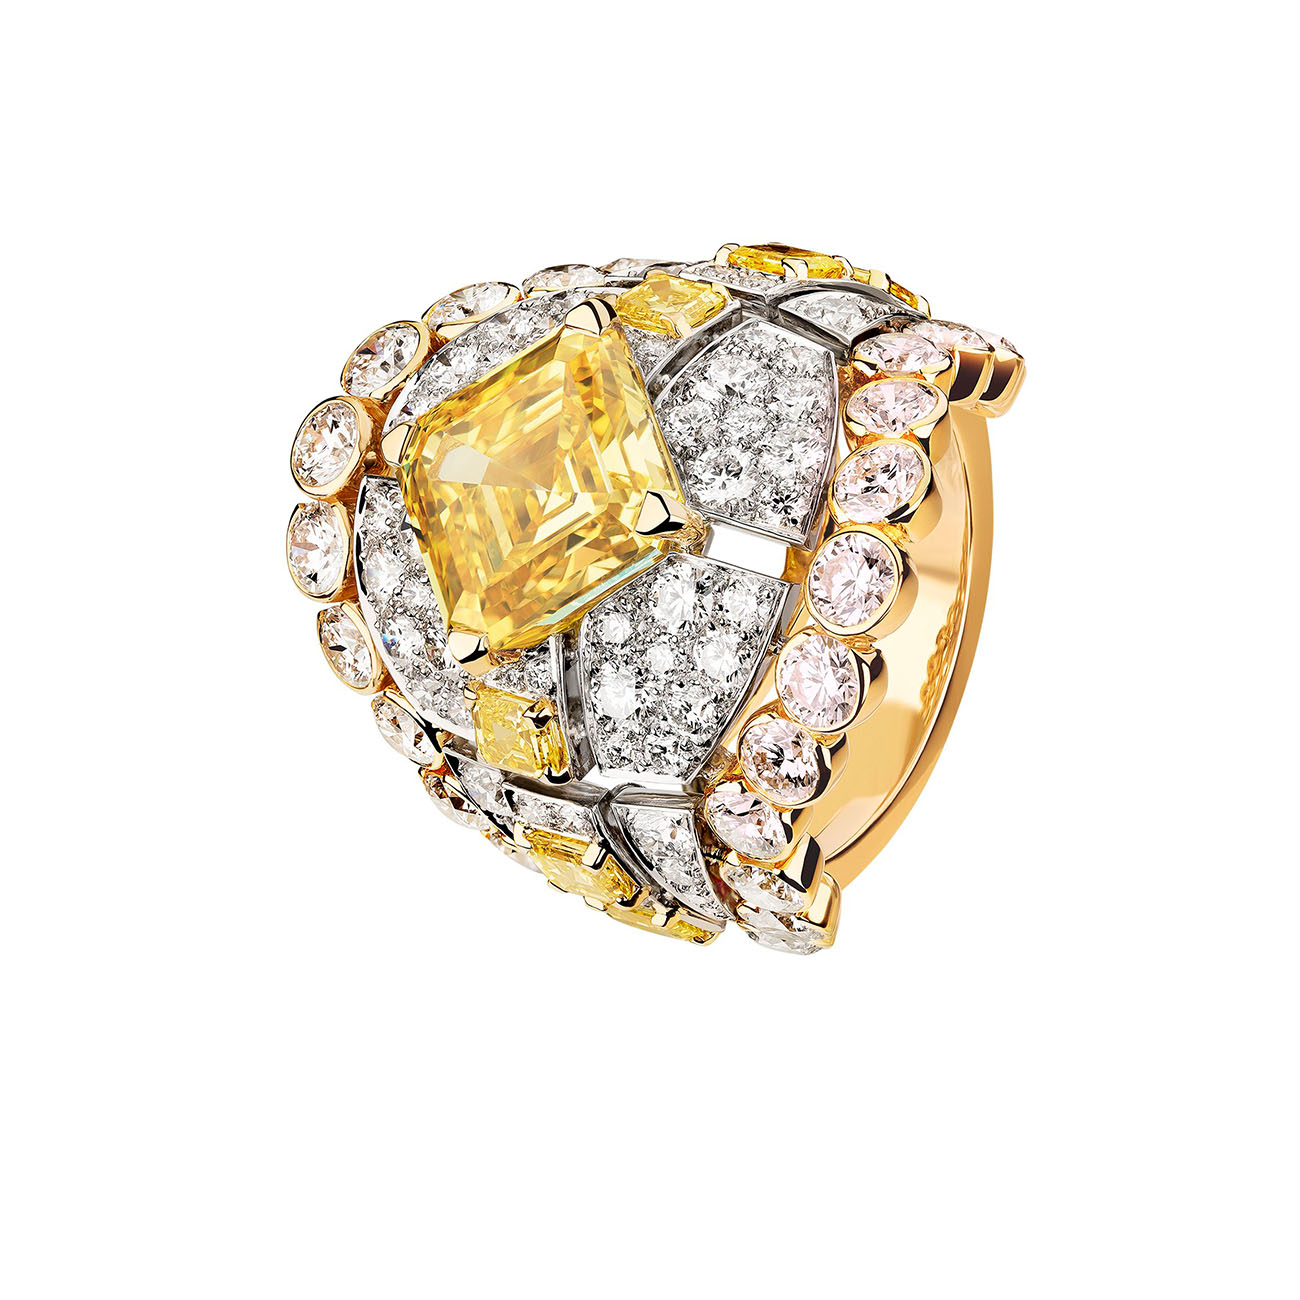 LE PARIS RUSSE DE CHANEL Roubachka ring High Jewelry Collection